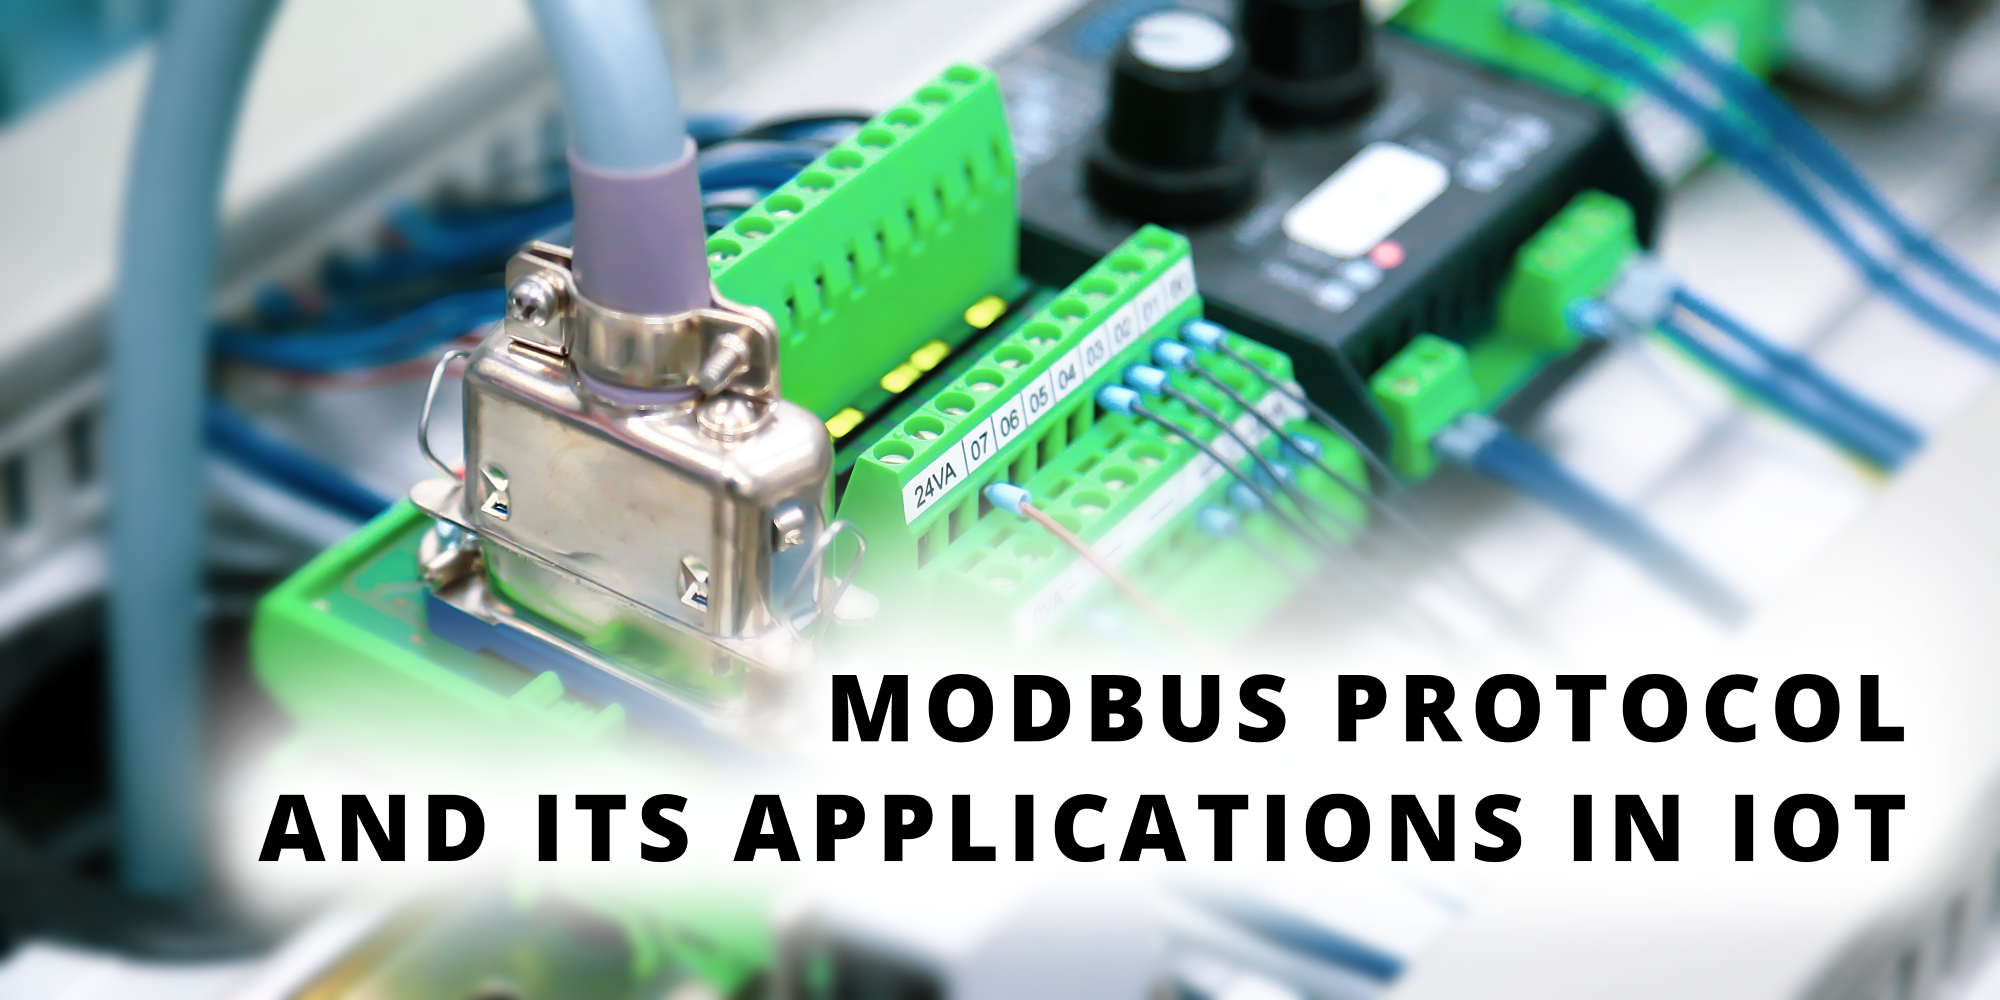 Modbus Protocol and its applications in IoT